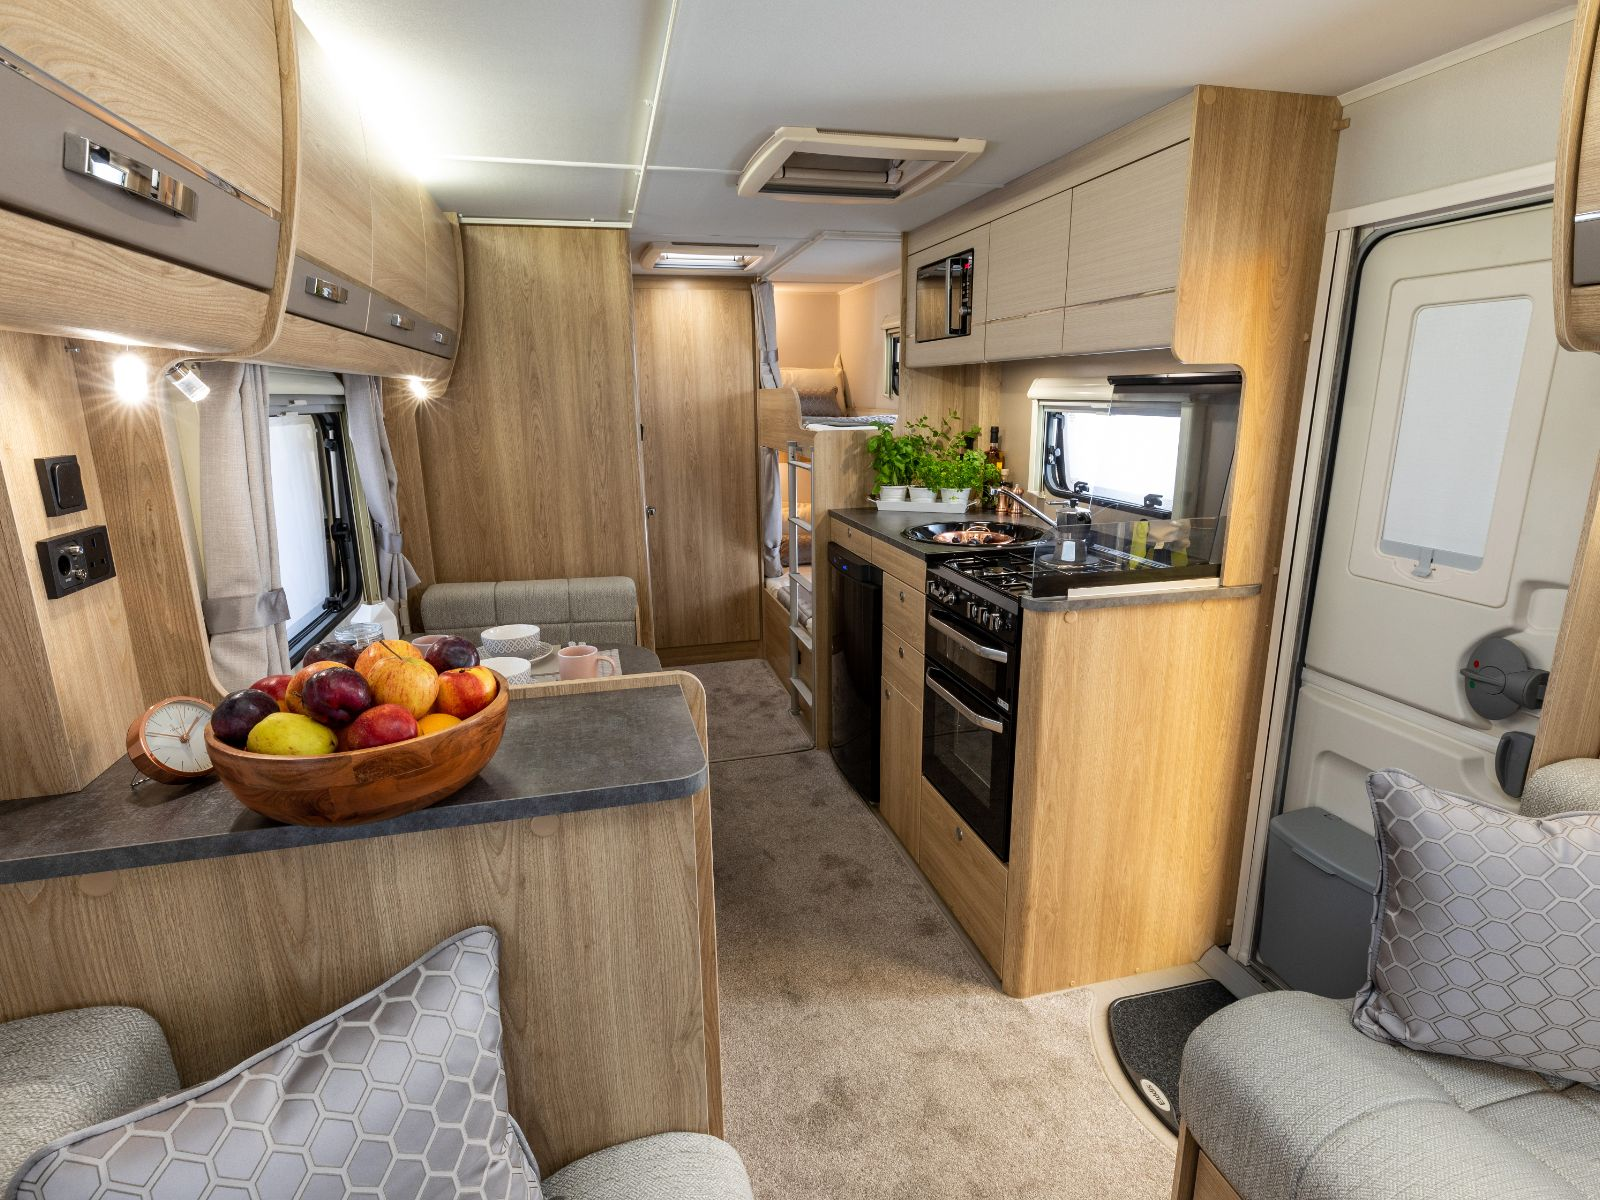 Lounge area with a view of the dining table, kitchen and double bunk beds at the rear of the caravan